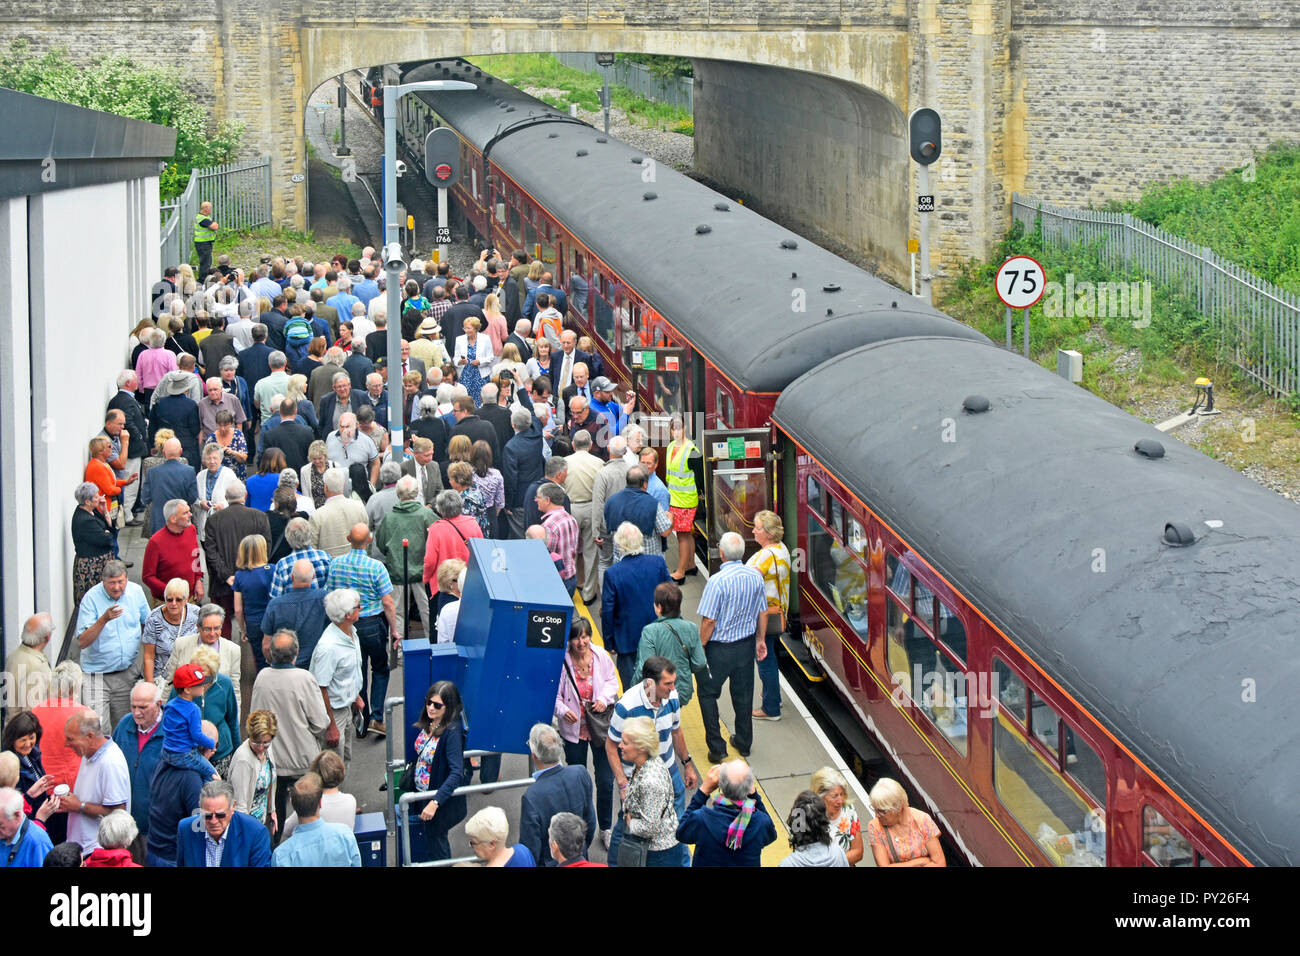 Aerial view looking down on crowd of people Oxford Parkway station platform hoping to see historic Flying Scotsman  steam locomotive engine England UK - Stock Image